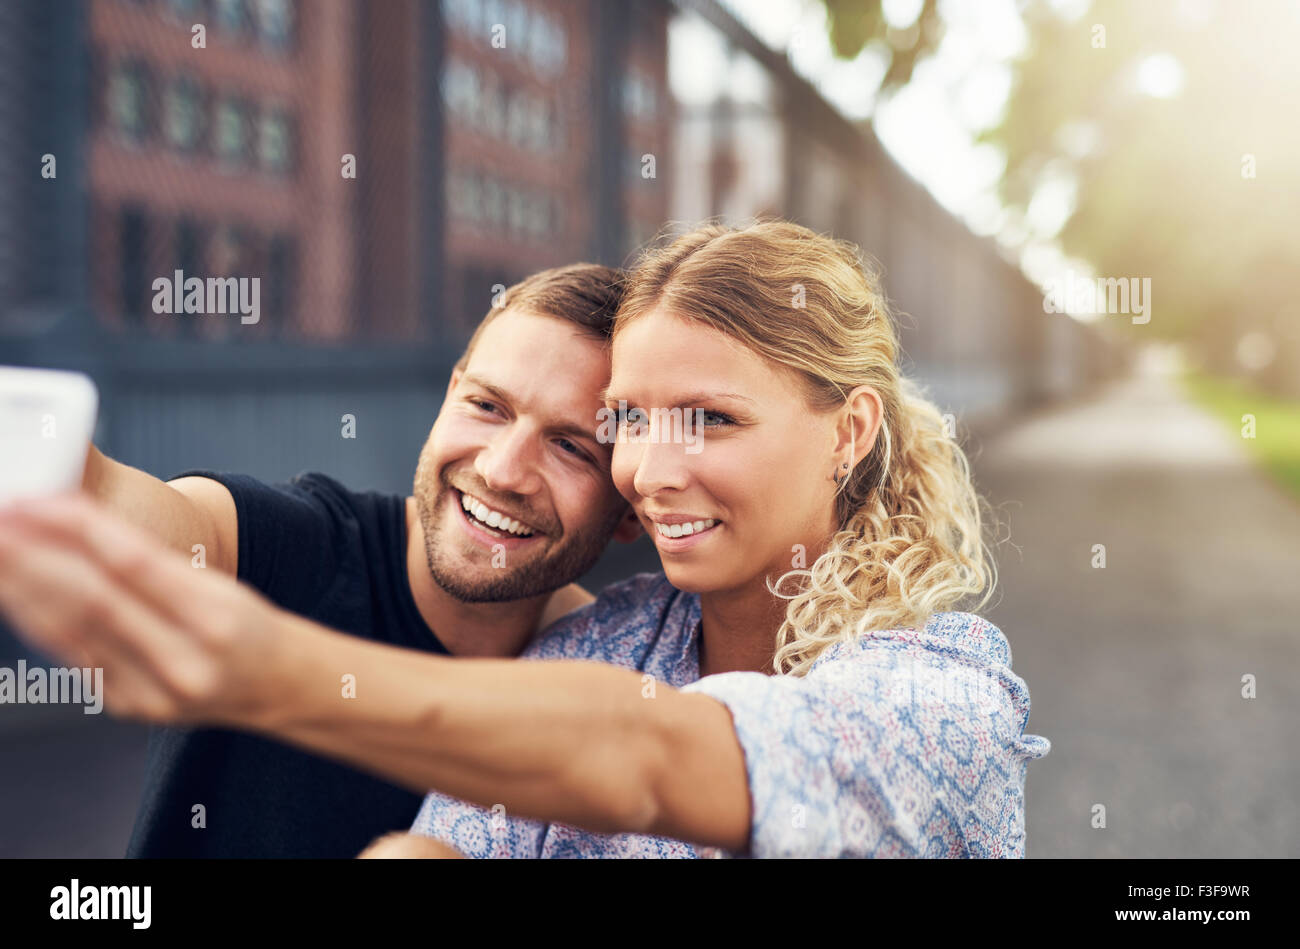 Prendre un beau couple assis Selfies dans un parc Photo Stock